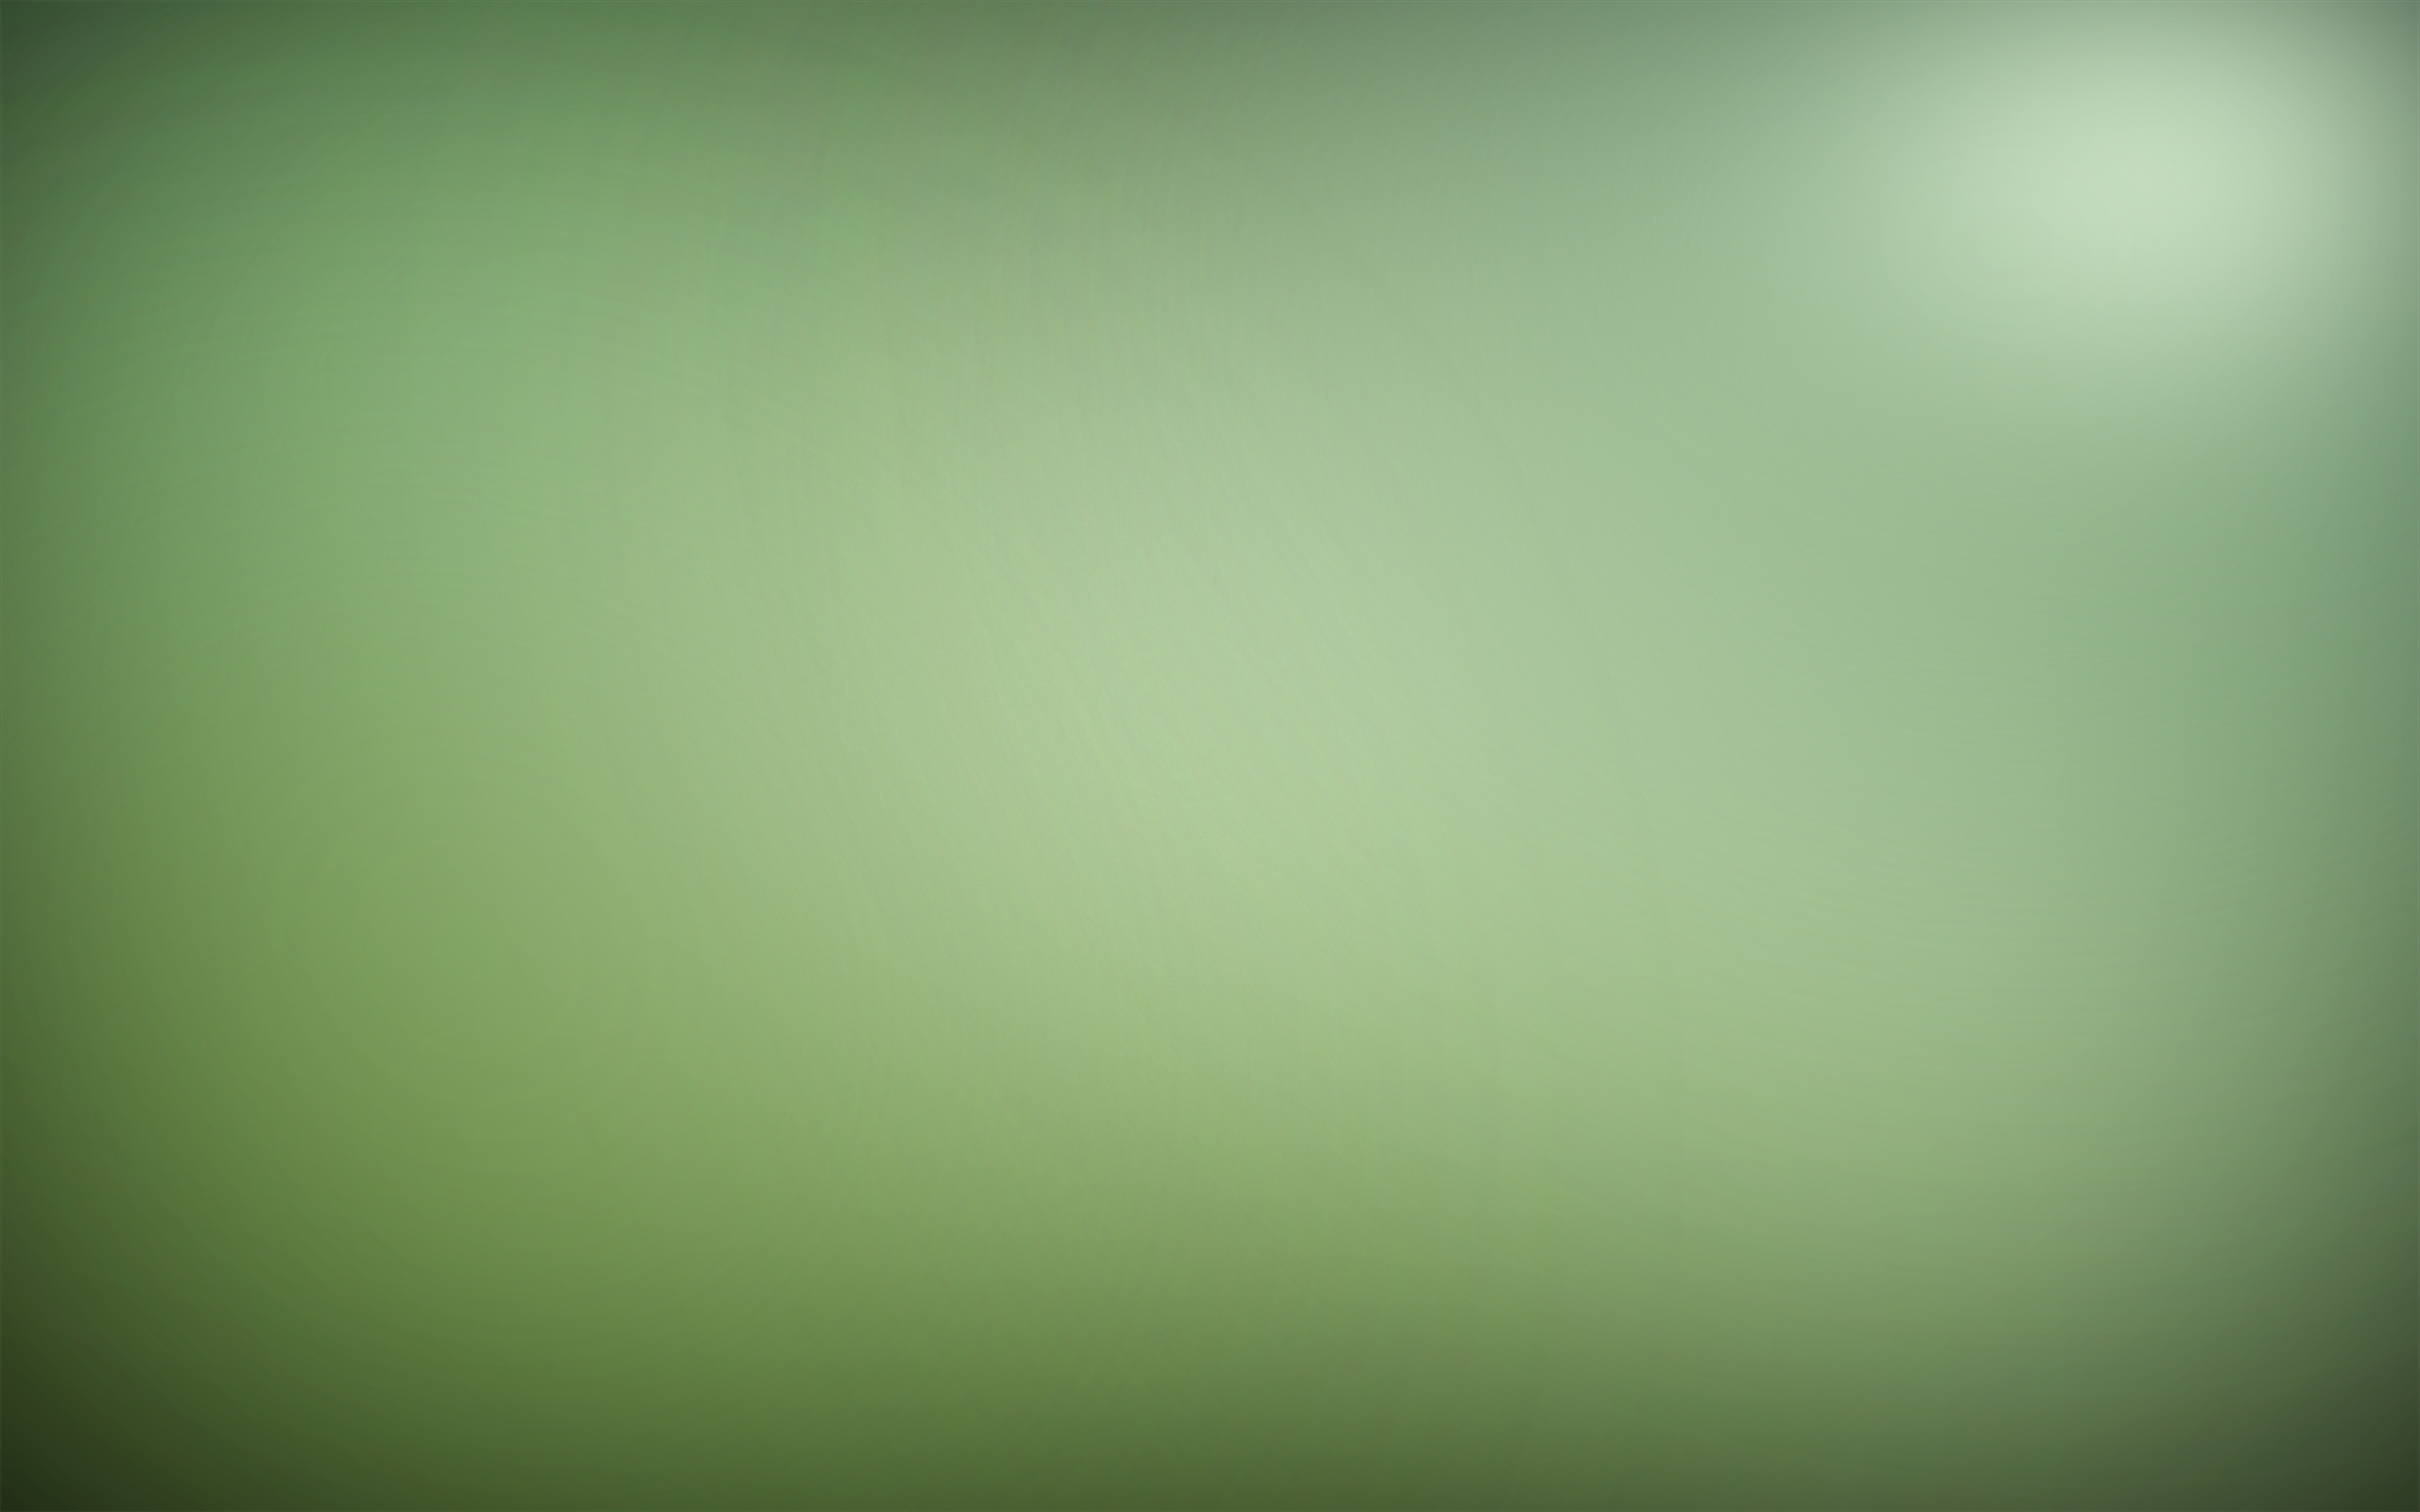 I Wish I Had A Name by iVereor, green, abstract, digital art, background, homogeneous,